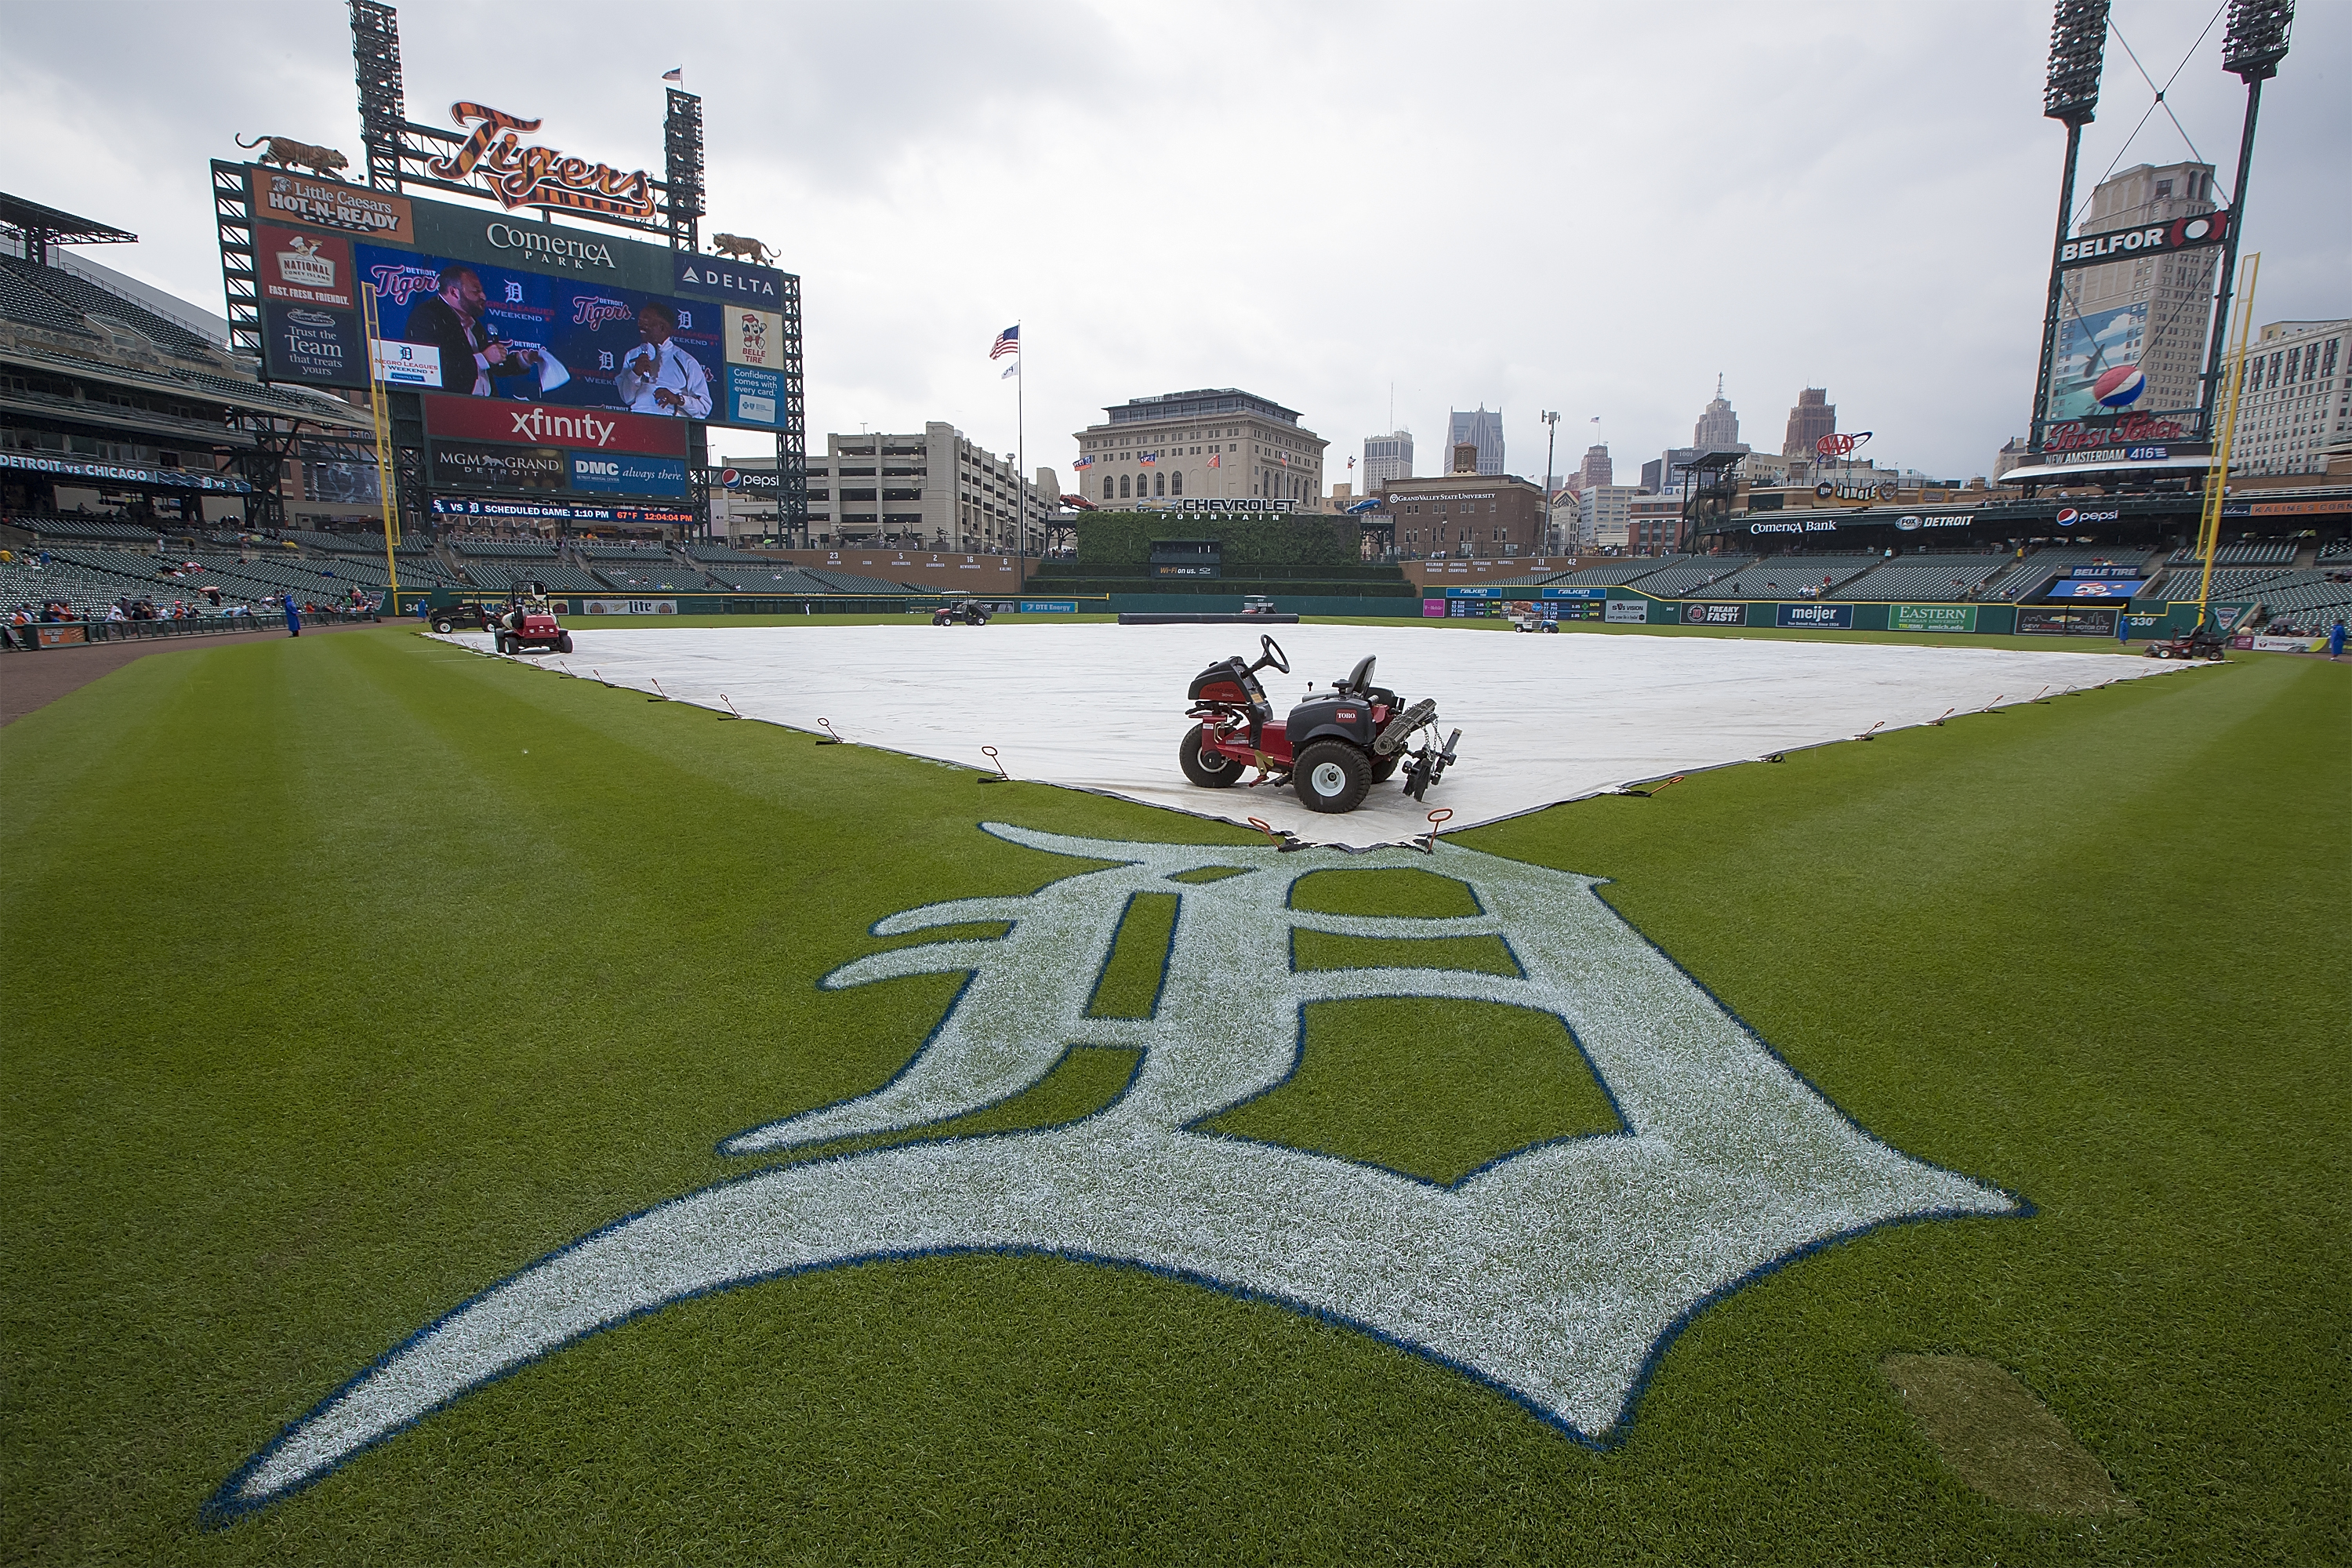 The White Sox and Tigers were rained out Wednesday.